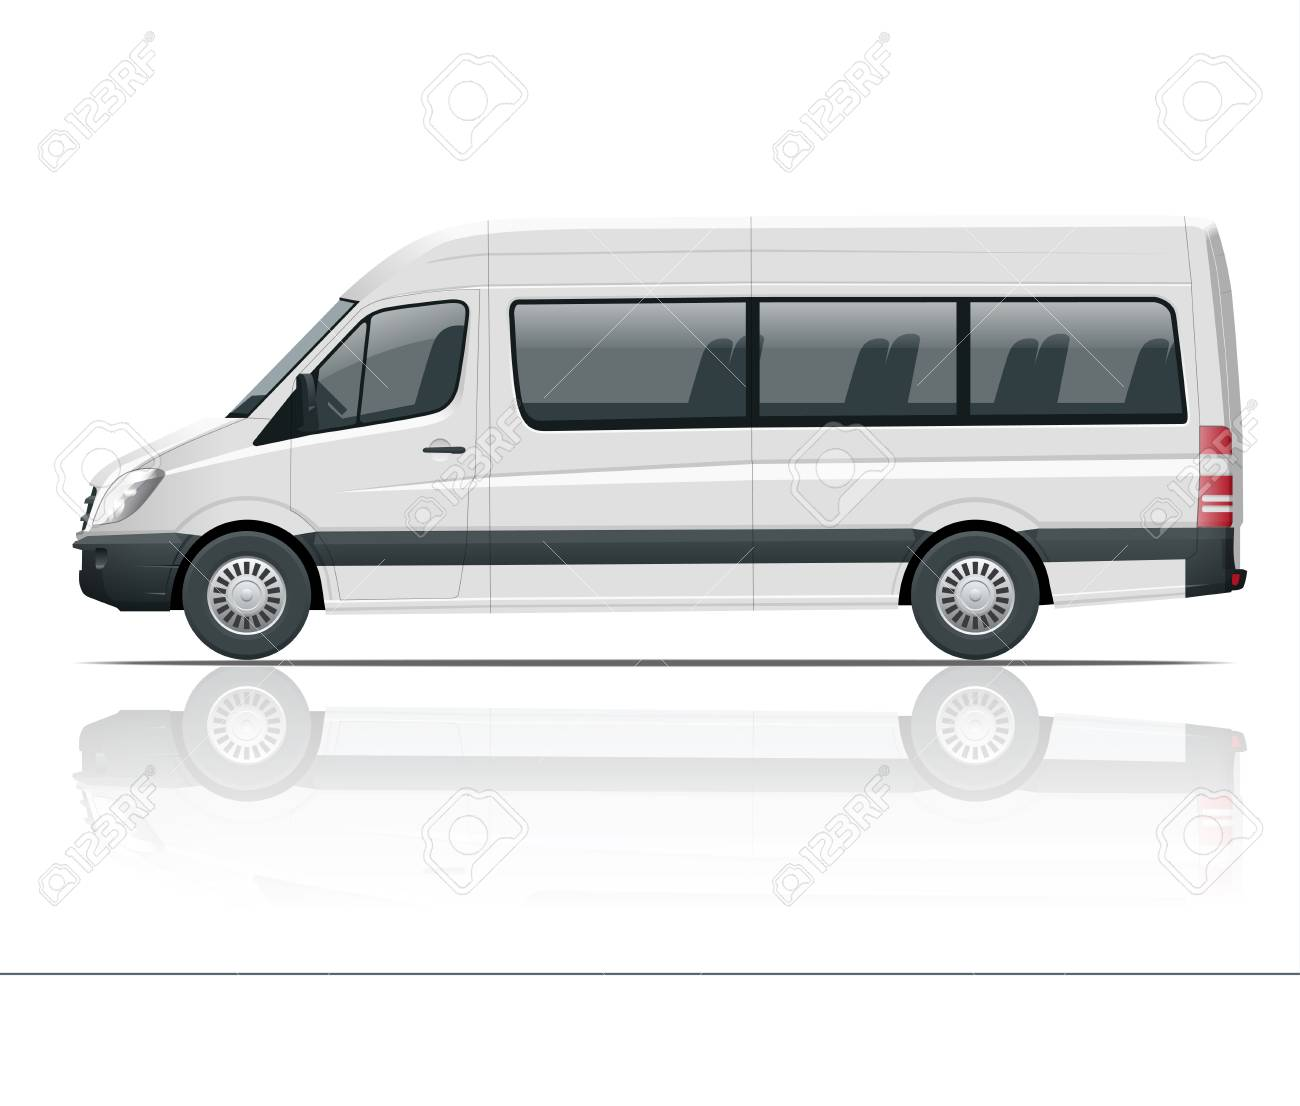 6d8975ebb6 Realistic White Van template Isolated passenger mini bus for corporate  identity and advertising. View from